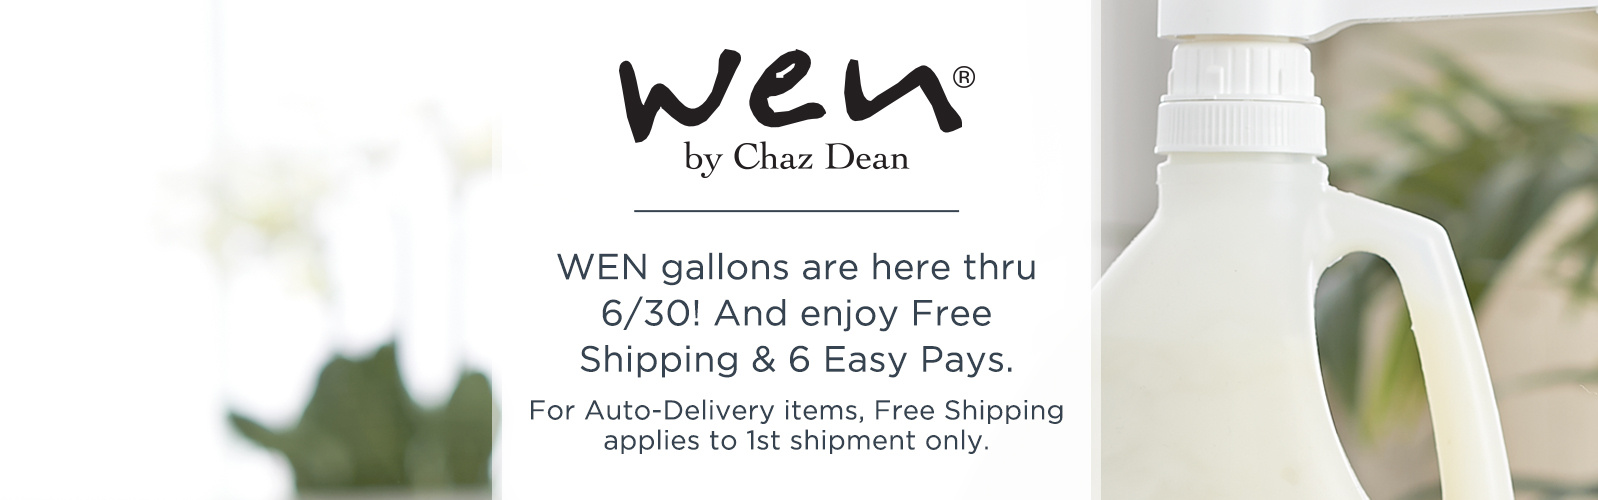 WEN by Chaz Dean. WEN gallons are here thru 6/30! And enjoy Free Shipping & 6 Easy Pays. For Auto-Delivery items, Free Shipping applies to 1st shipment only.